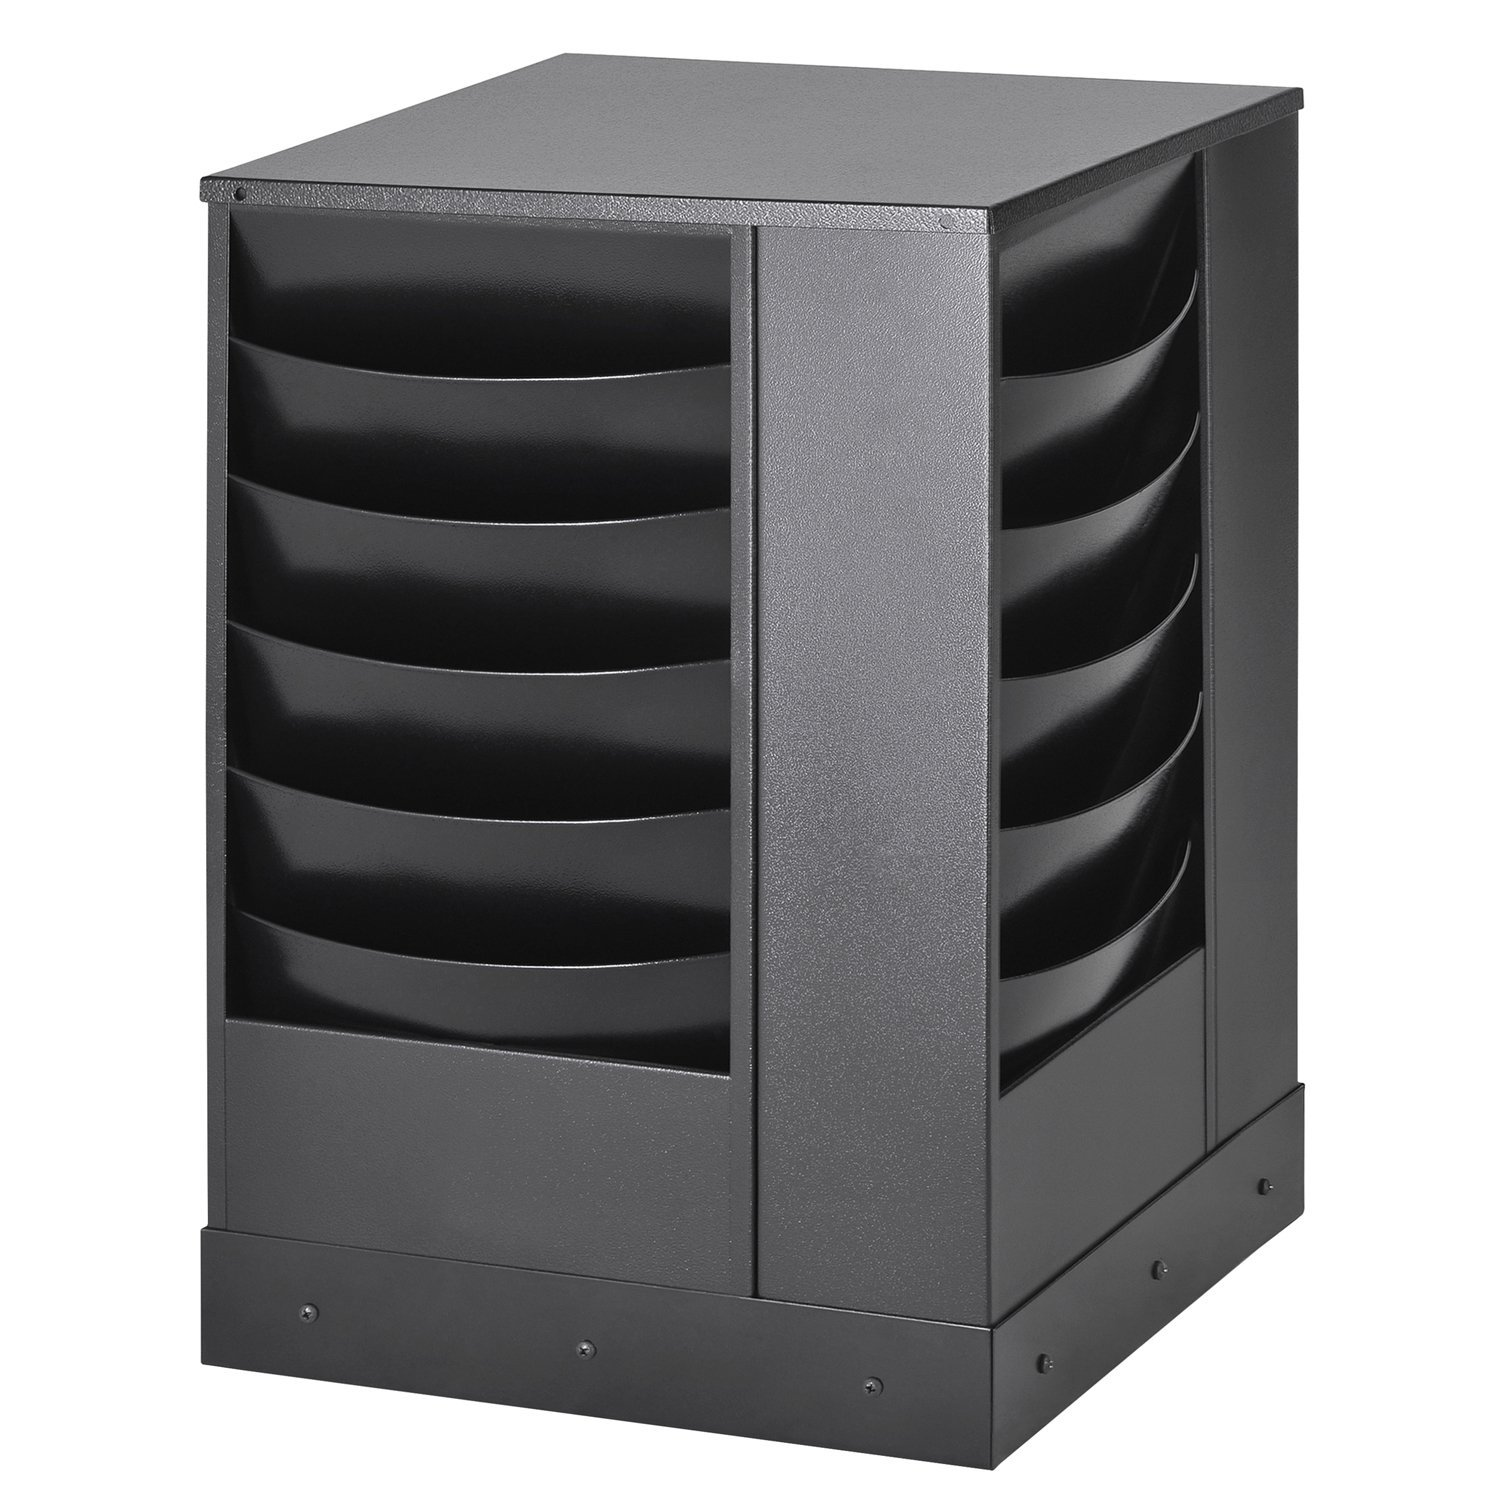 Buddy Products 20-Pocket Curved Steel Rotating Display Rack, 13.75 x 25.88 x 13.75 Inches, Black (0864-4)